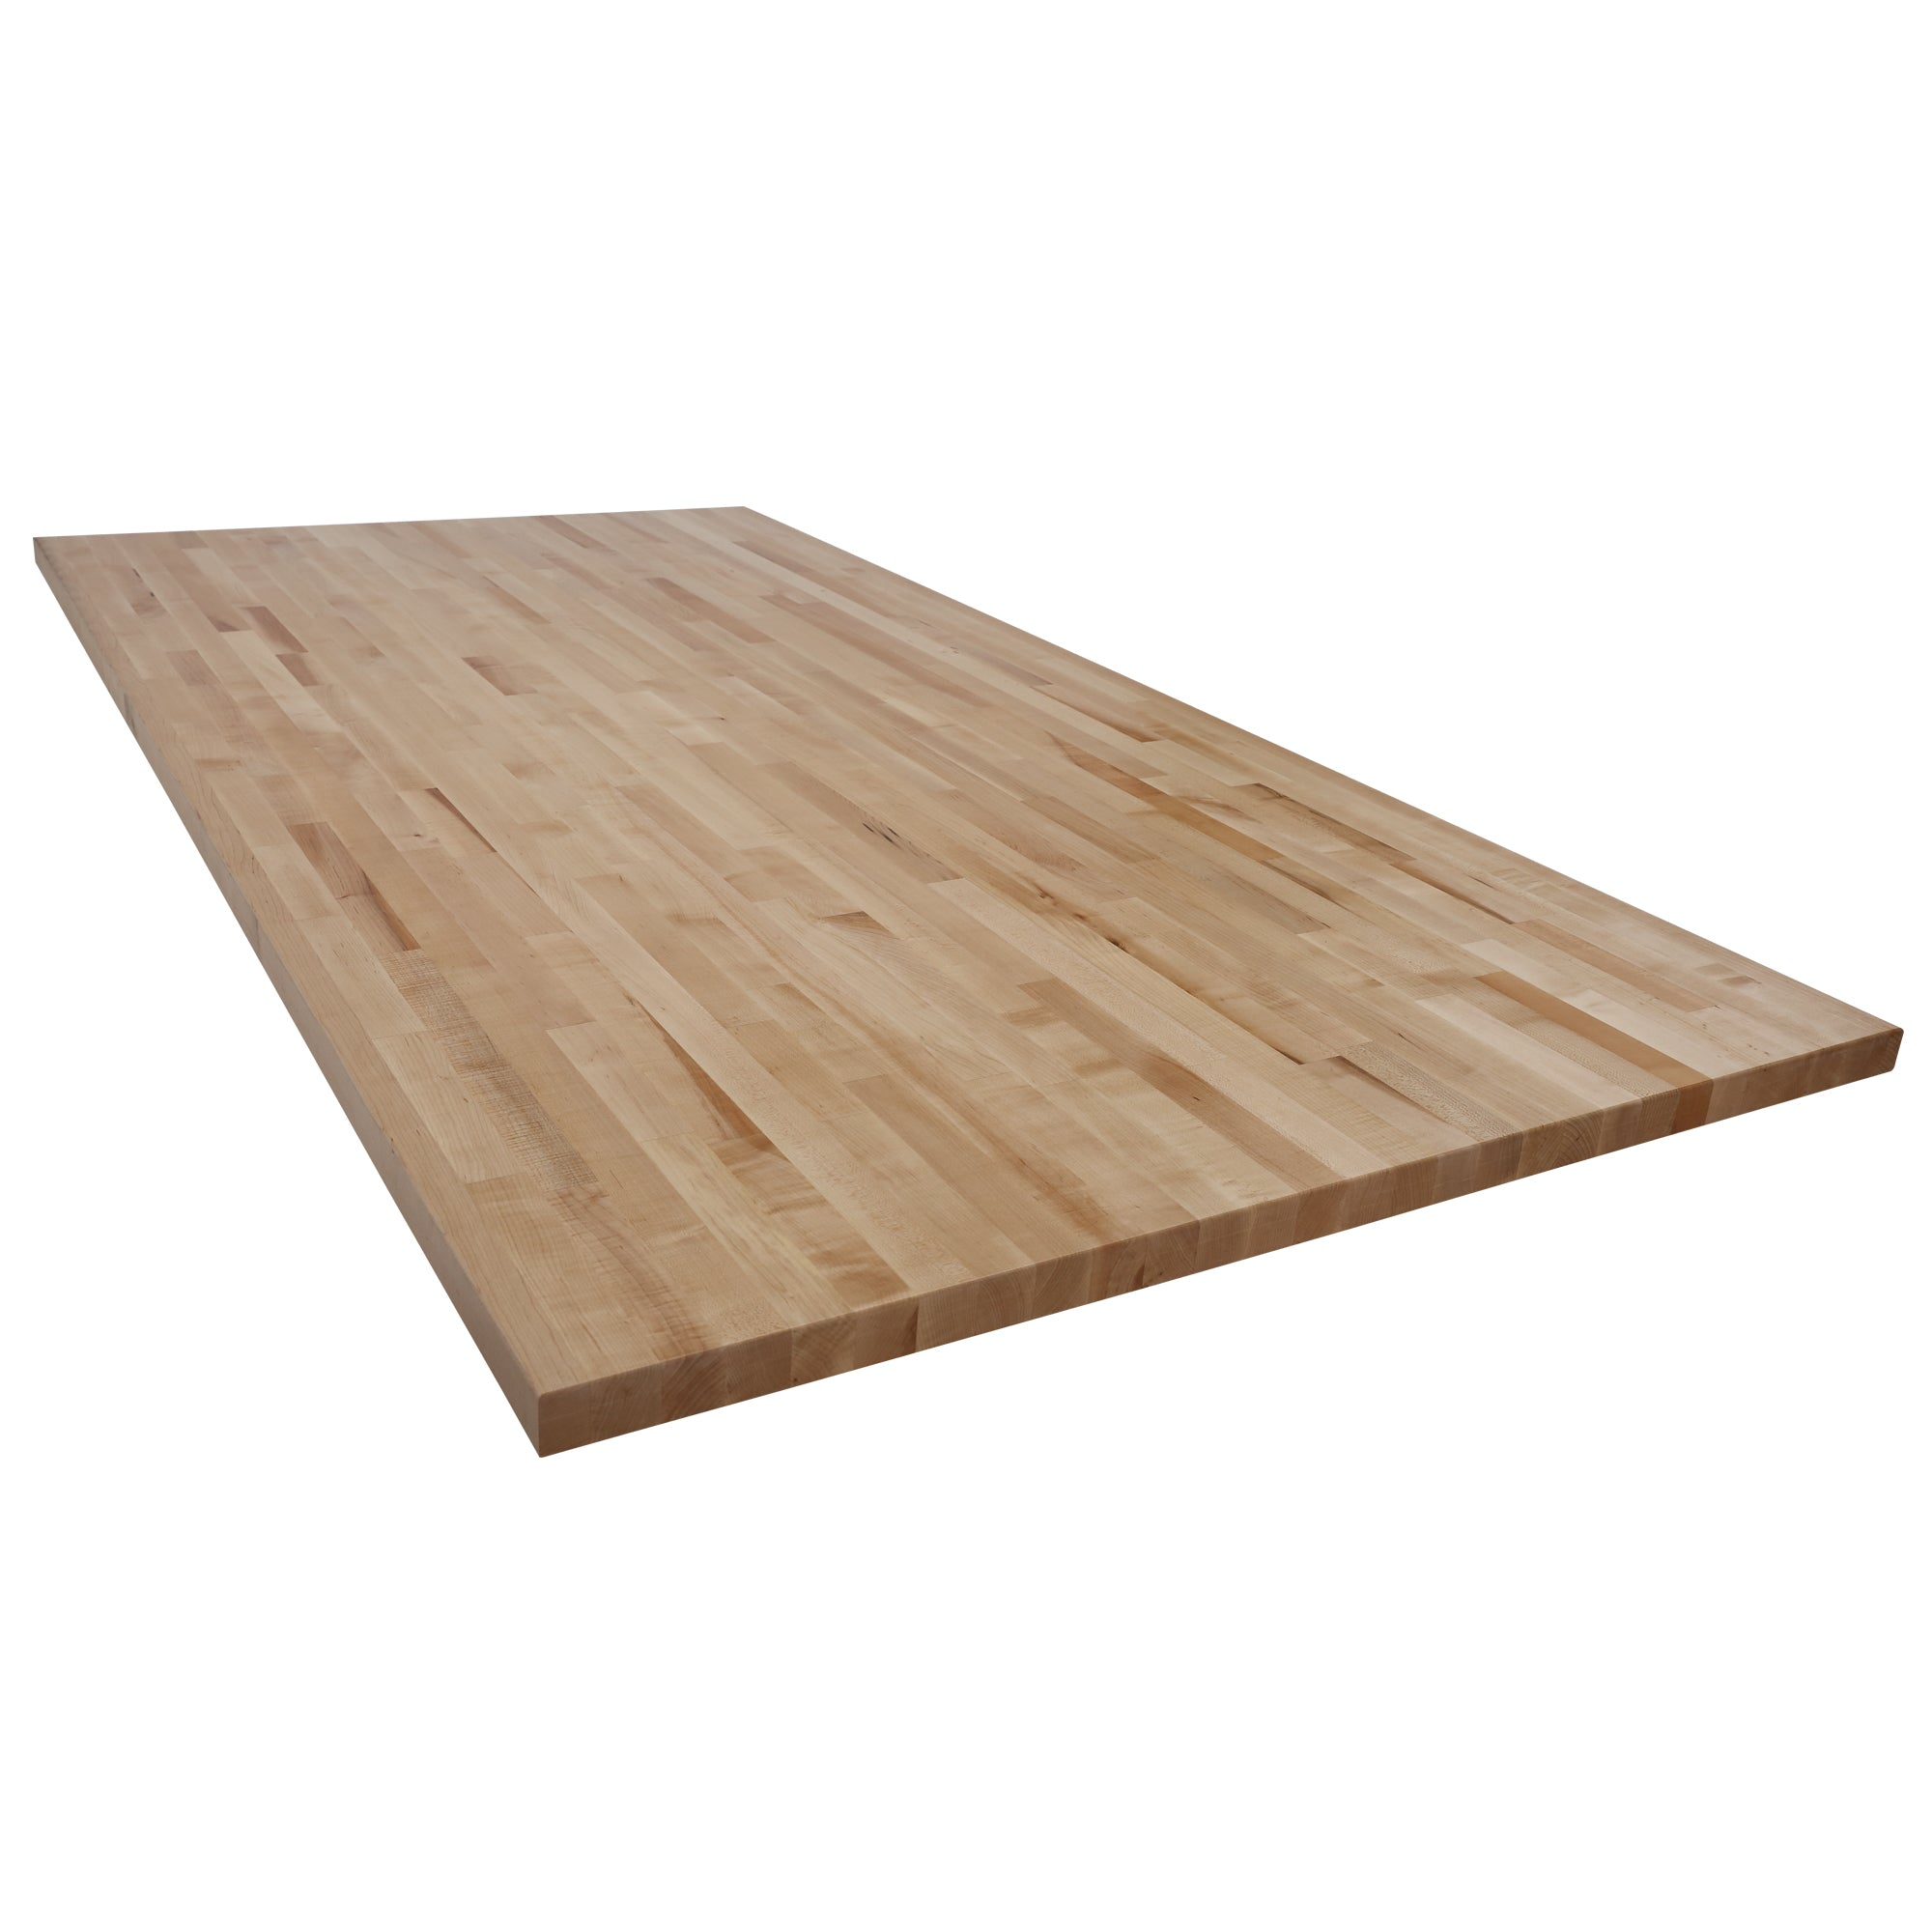 Maple Table Island Tops ¾ Thick AGA Wood Welded West - Thick wood table top